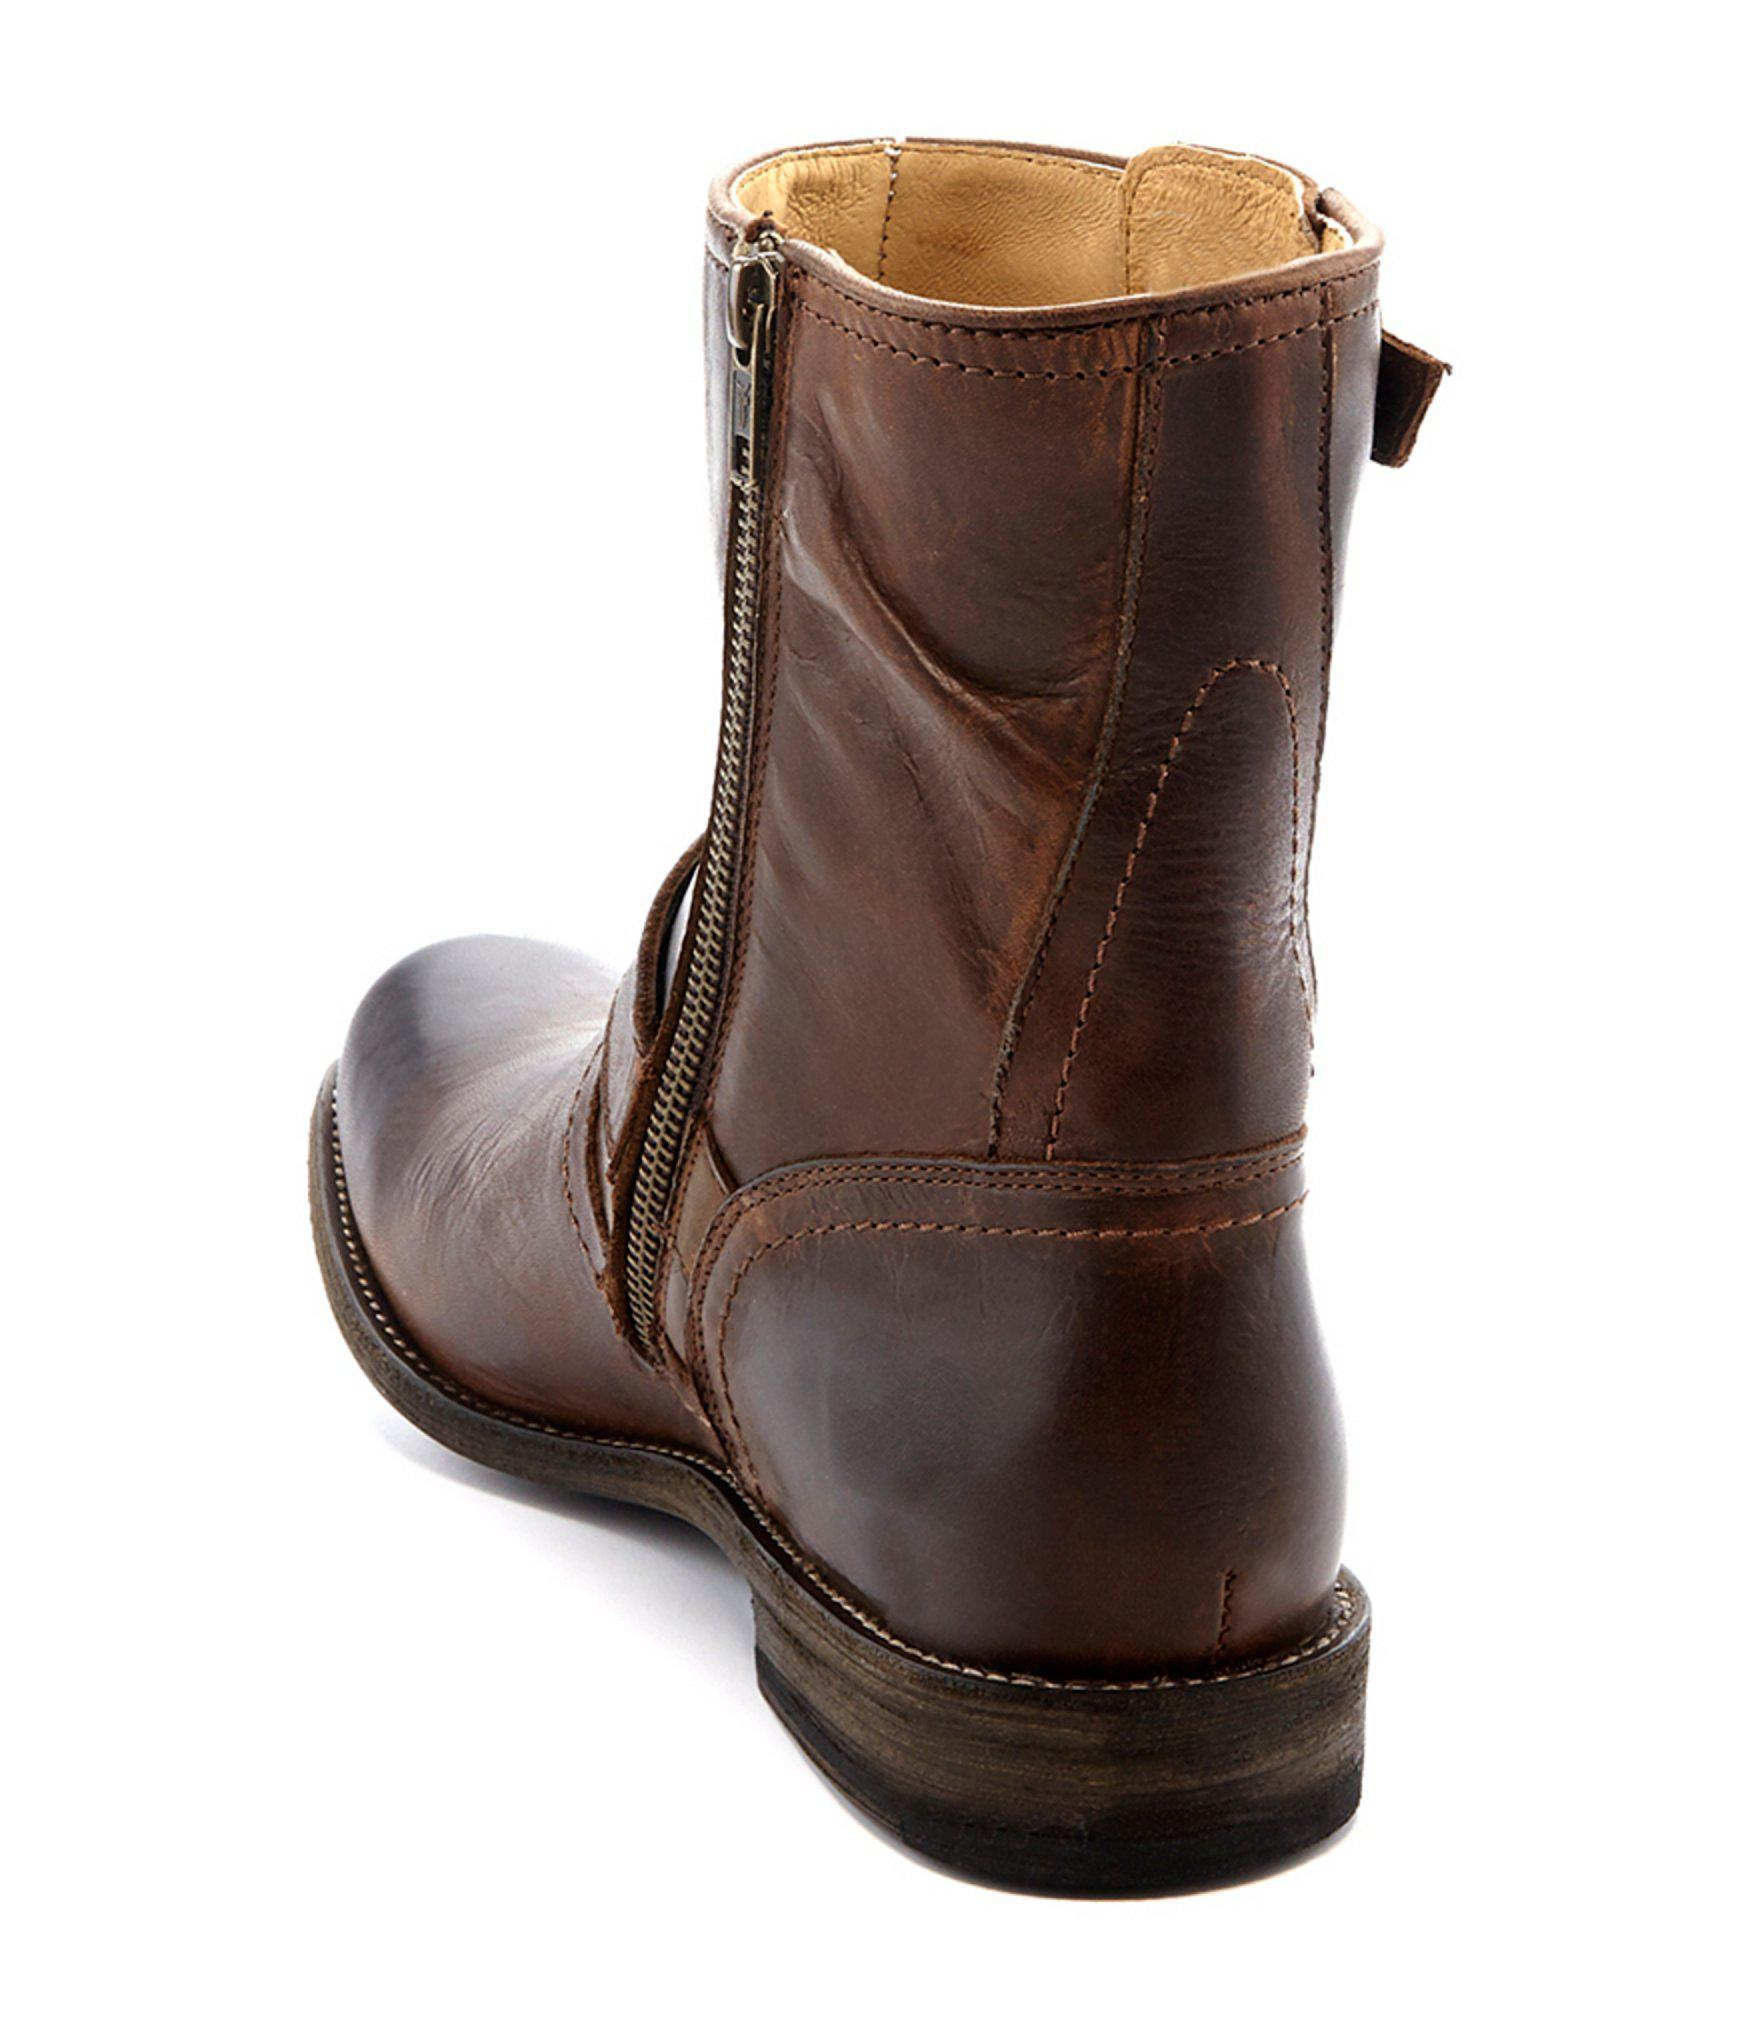 c7c5536e2c Frye - Brown Smith Engineer Leather Buckle Boots for Men - Lyst. View  fullscreen